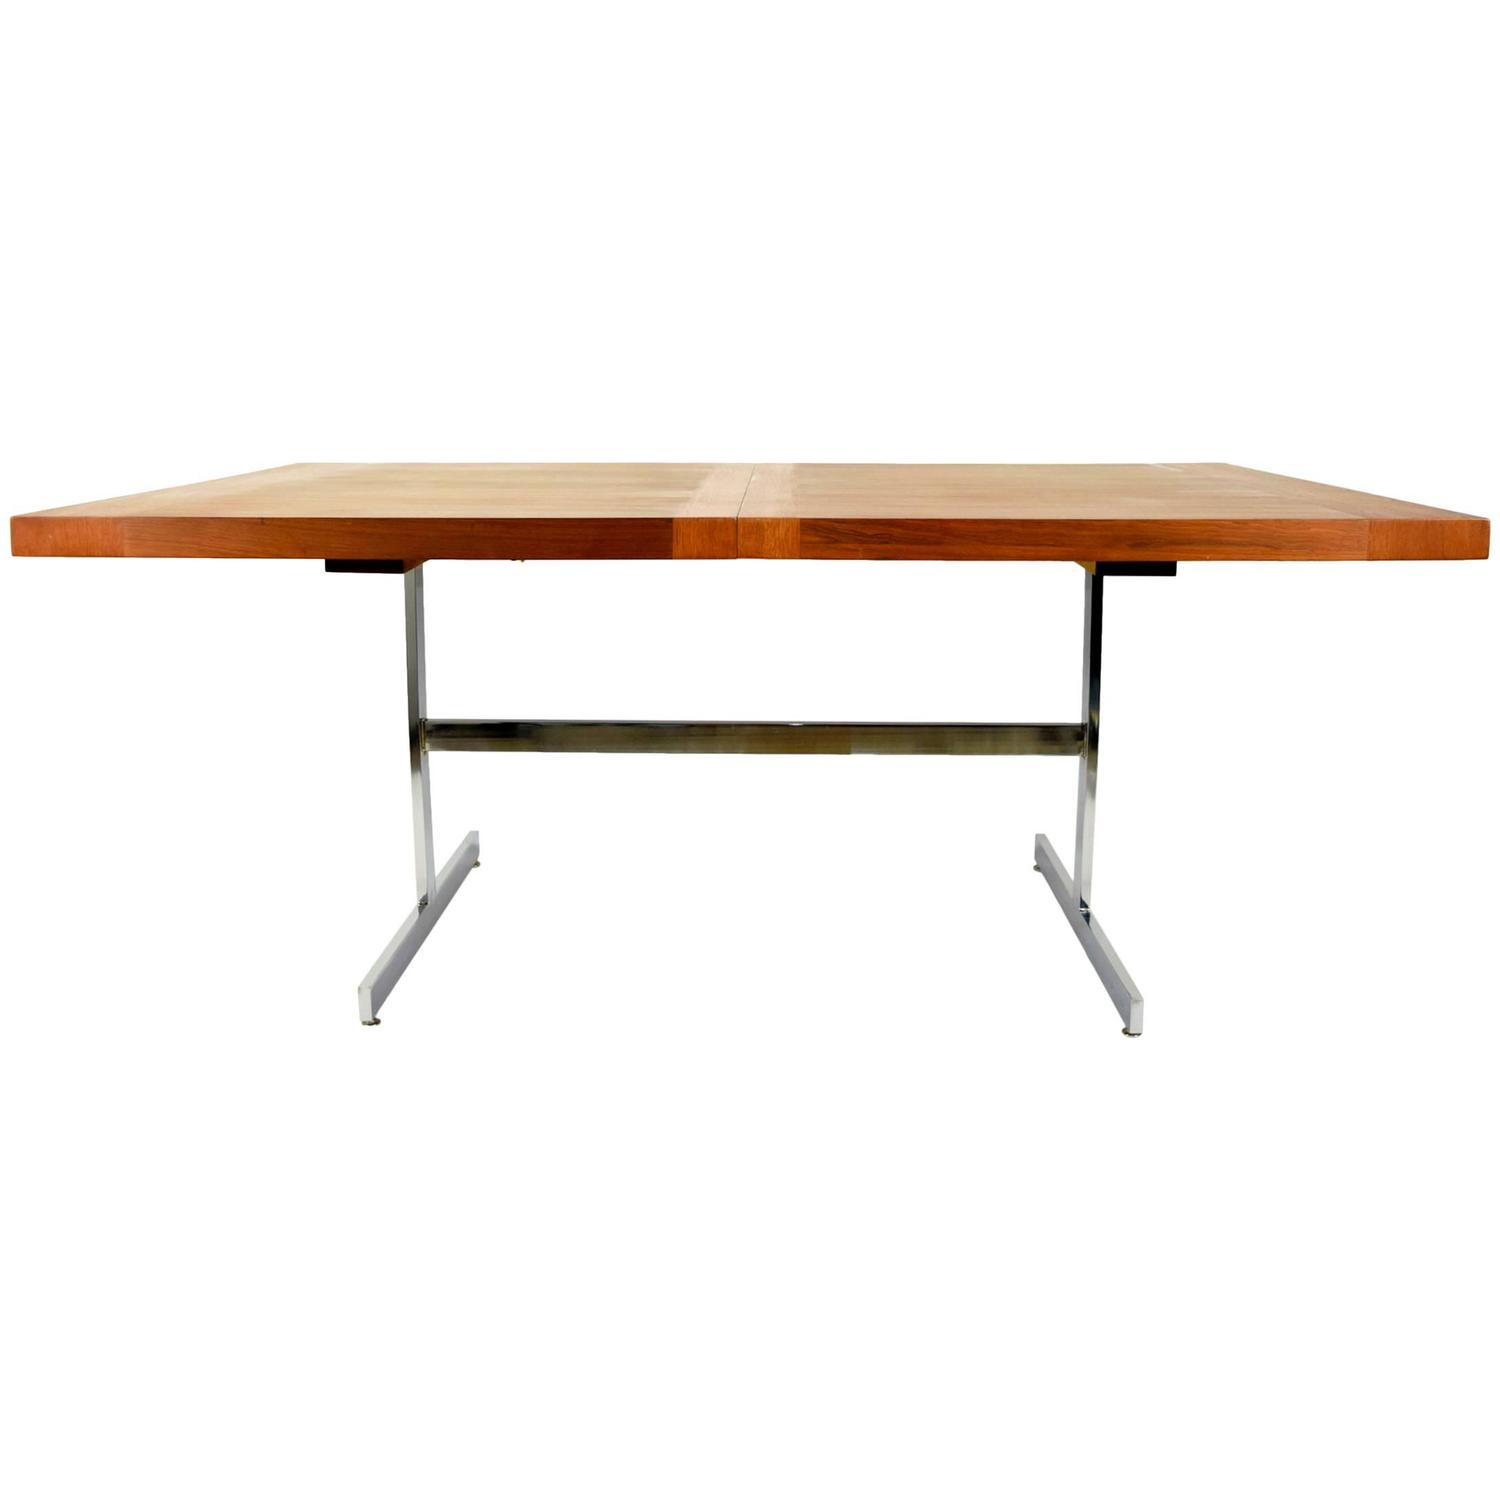 Milo Baughman Walnut Dining Table With Chrome Base At 1stdibs